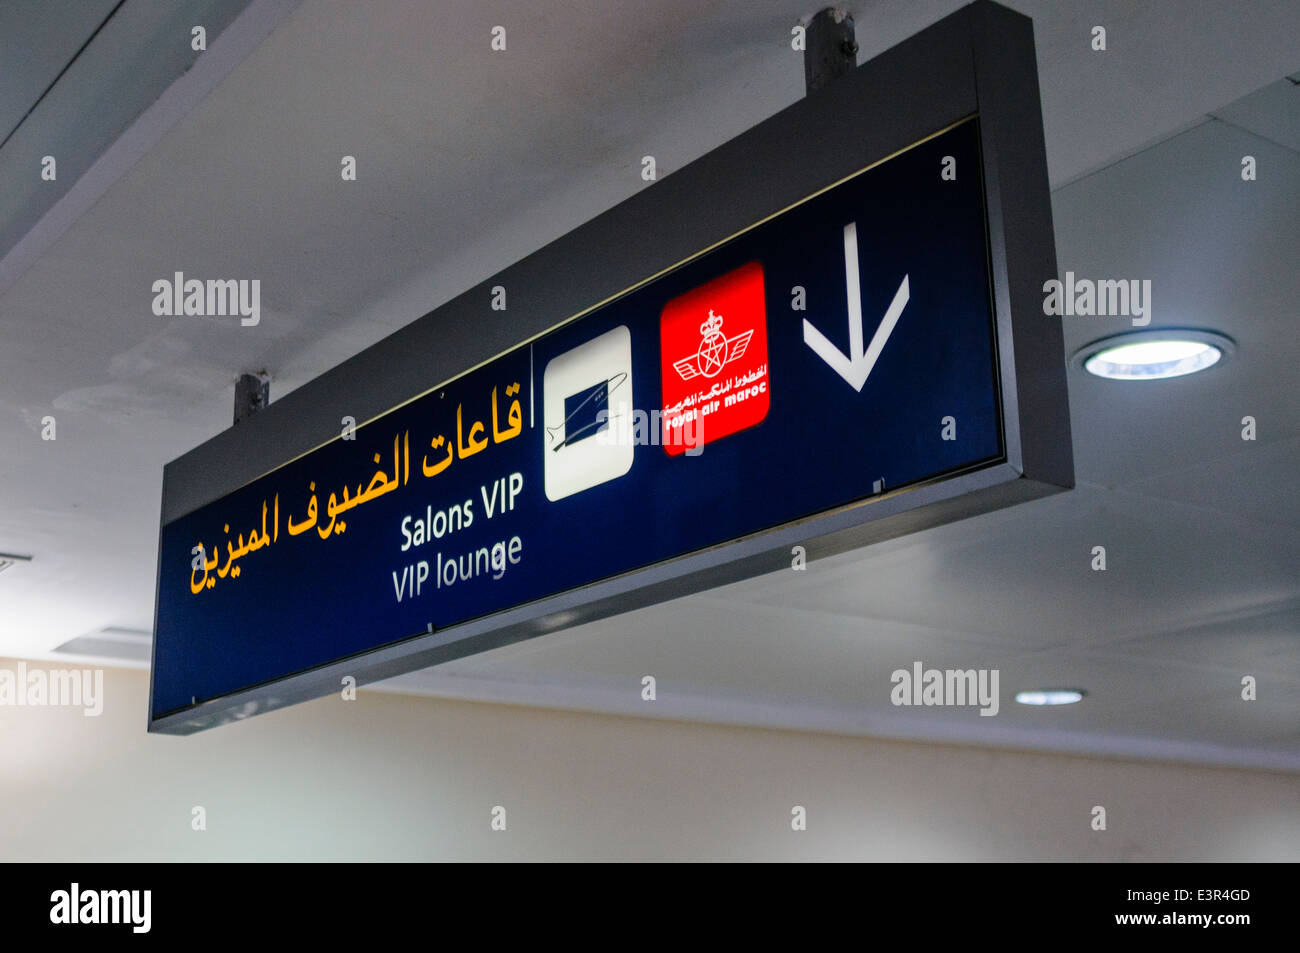 Sign to the airport lounges in Arabic, French and English at Marakech International Airport, Morocco - Stock Image